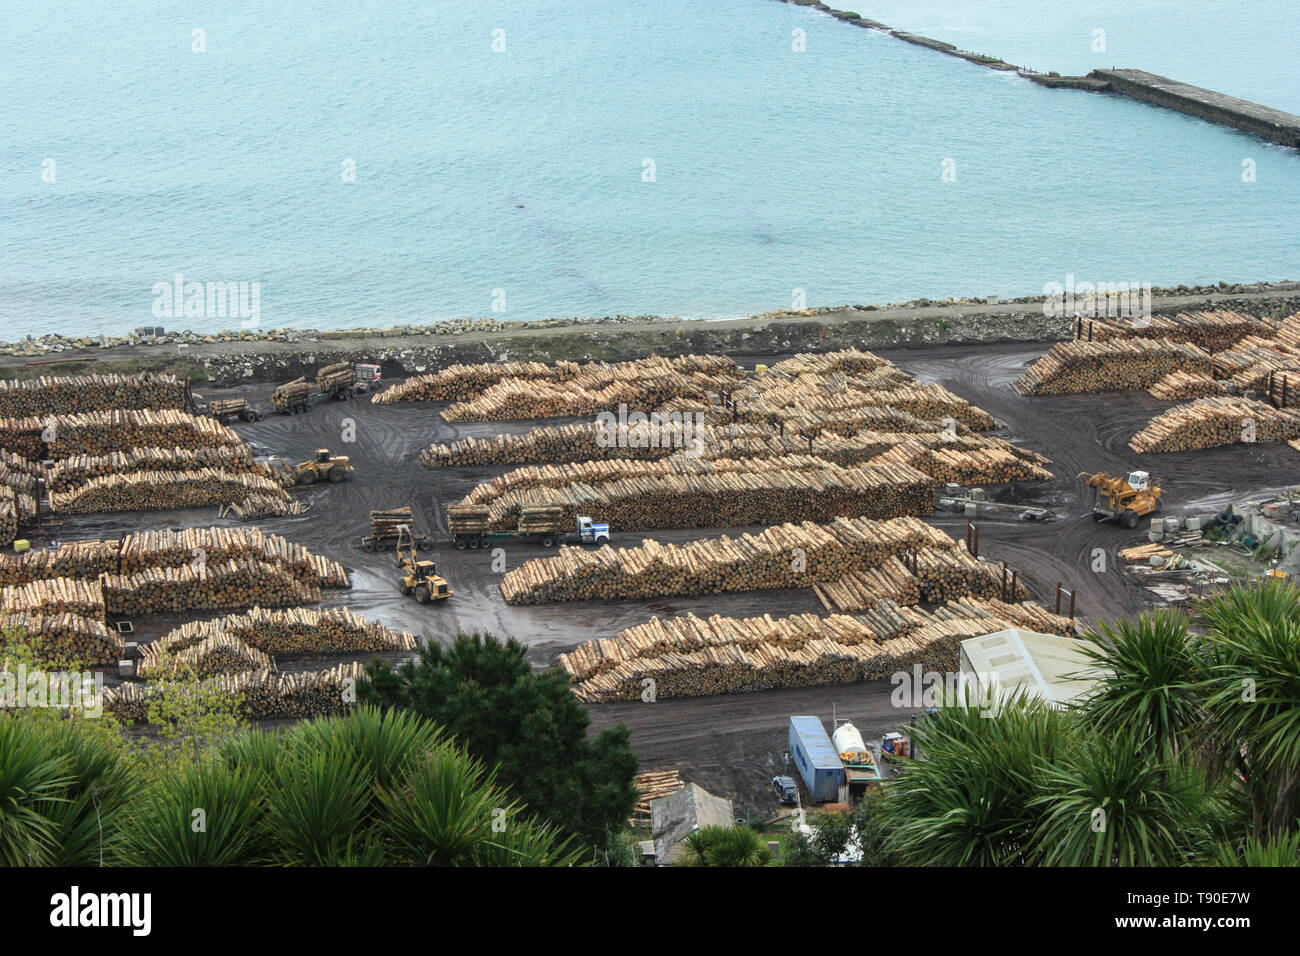 Piles of logs from New Zealand's timber industry ready to be exported from the Port of Napier, New Zealand - Stock Image